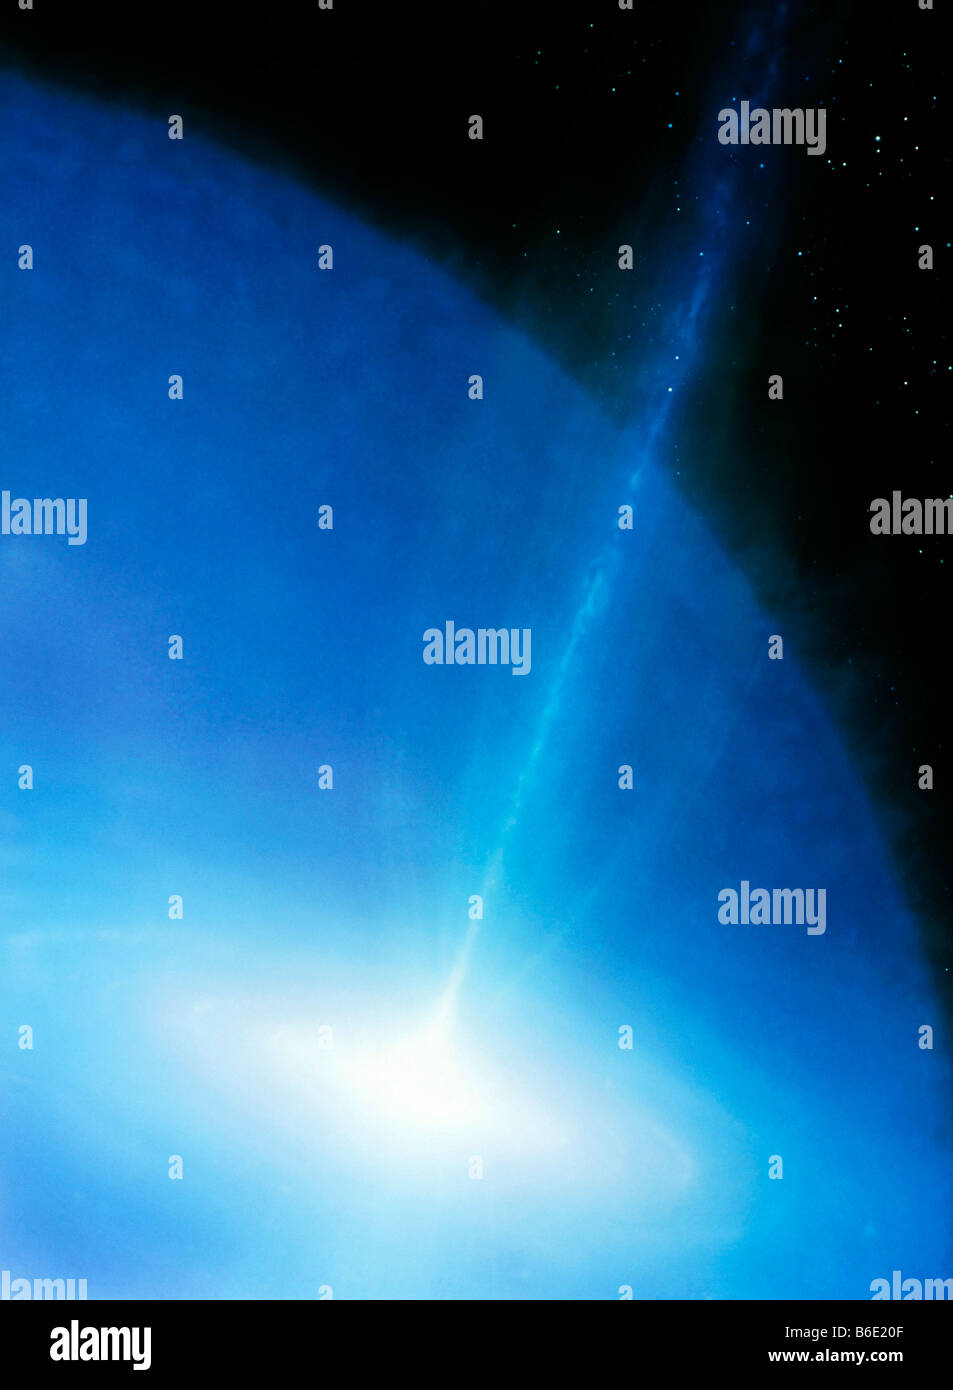 A microquasar is a small black hole orbiting a larger star. Illustration Stock Photo